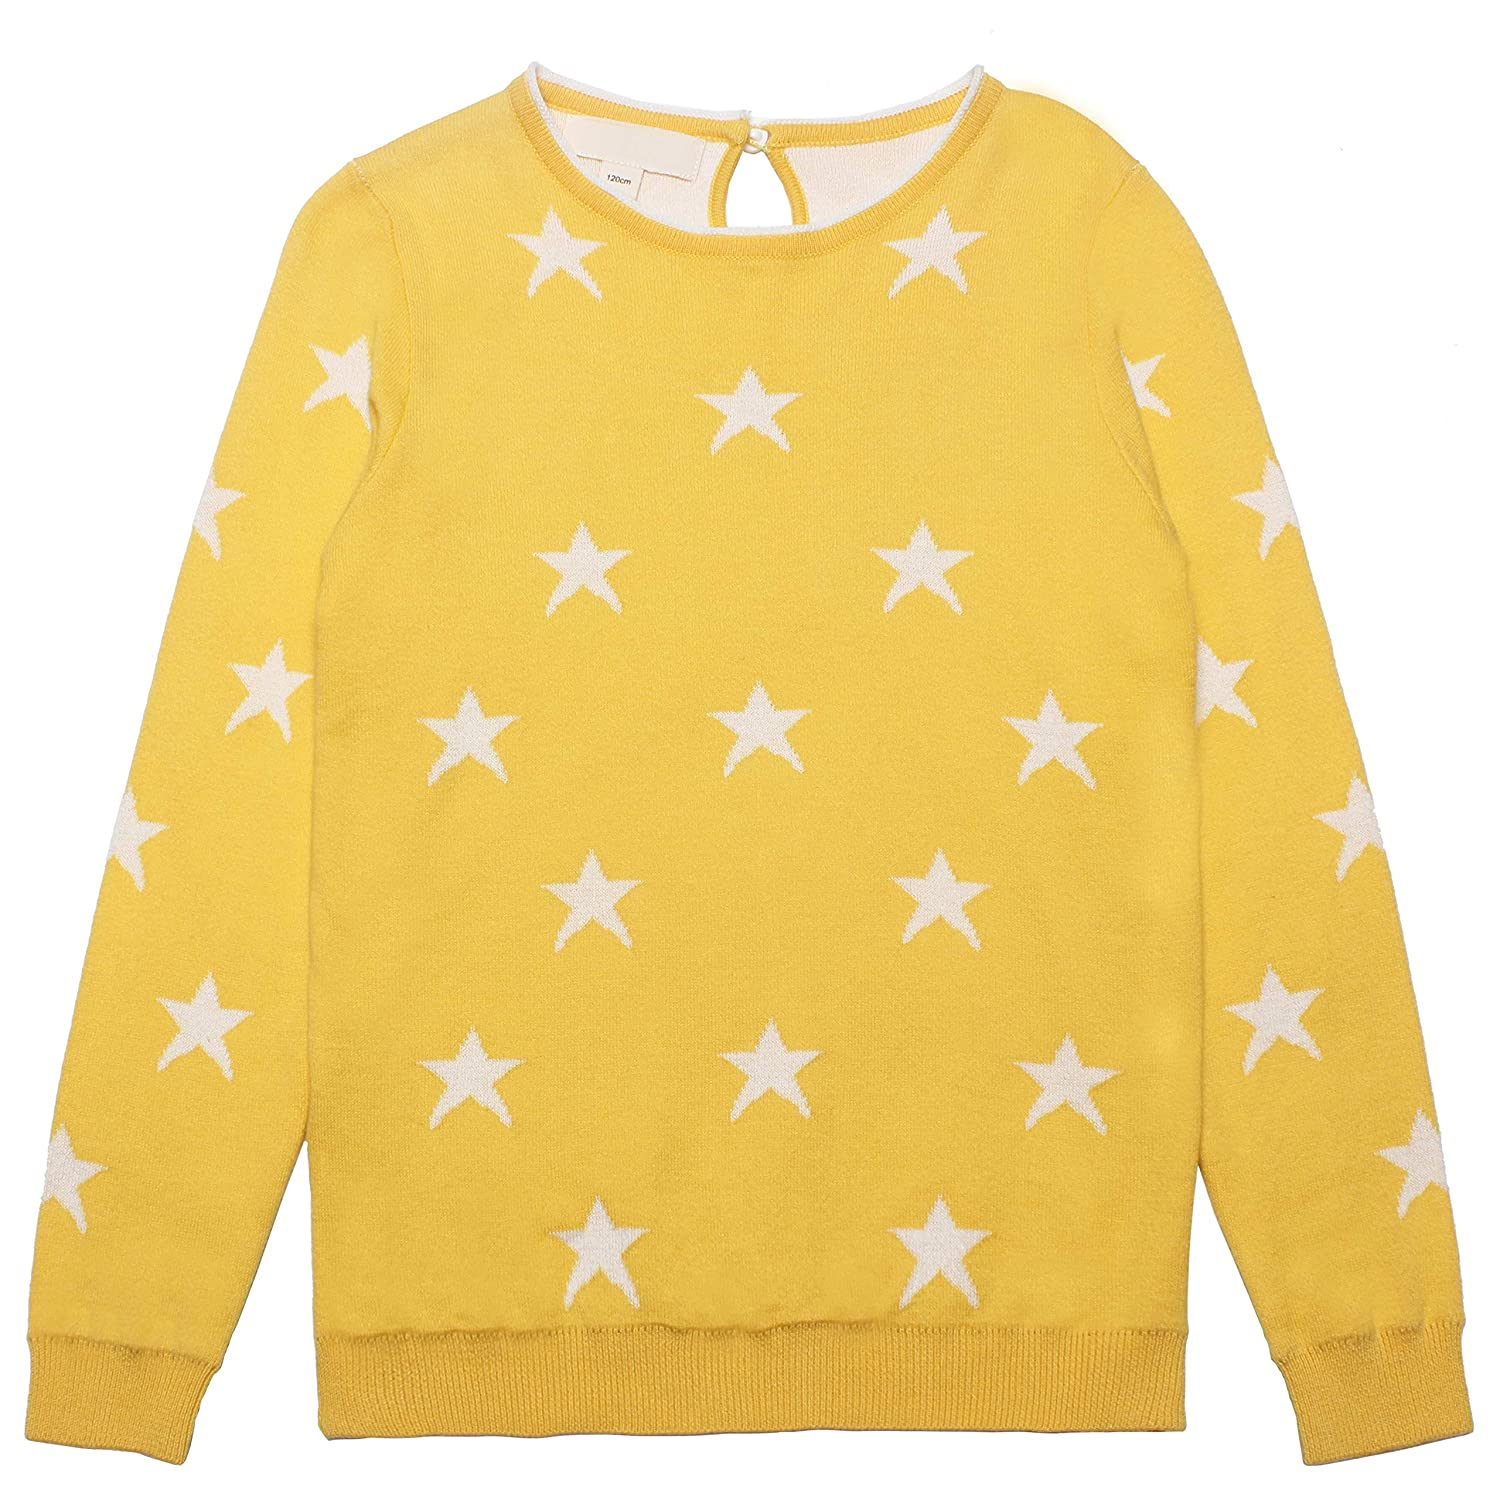 Mini Phoebee Little Girls Long Sleeve Crew Neck Cotton Knit Pullover Sweater with Cute Jacquard Star Pattern